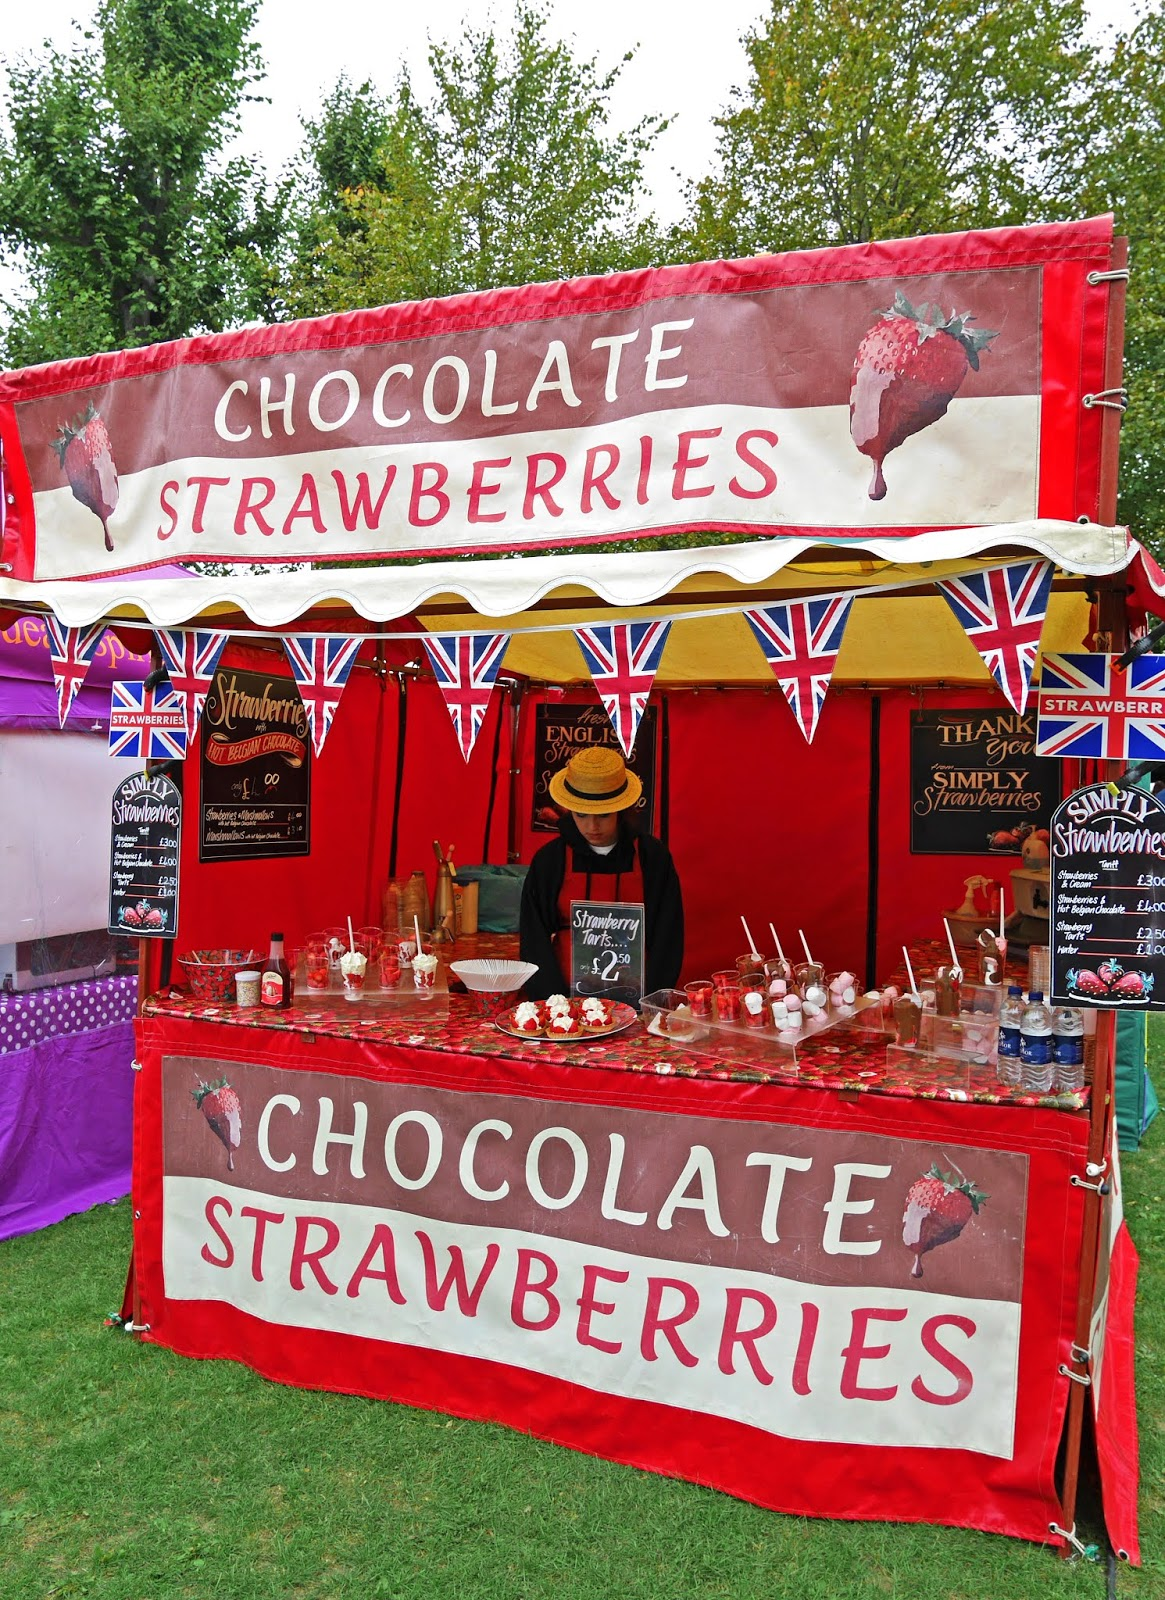 Chocolate Strawberries at the Canterbury Food Festival